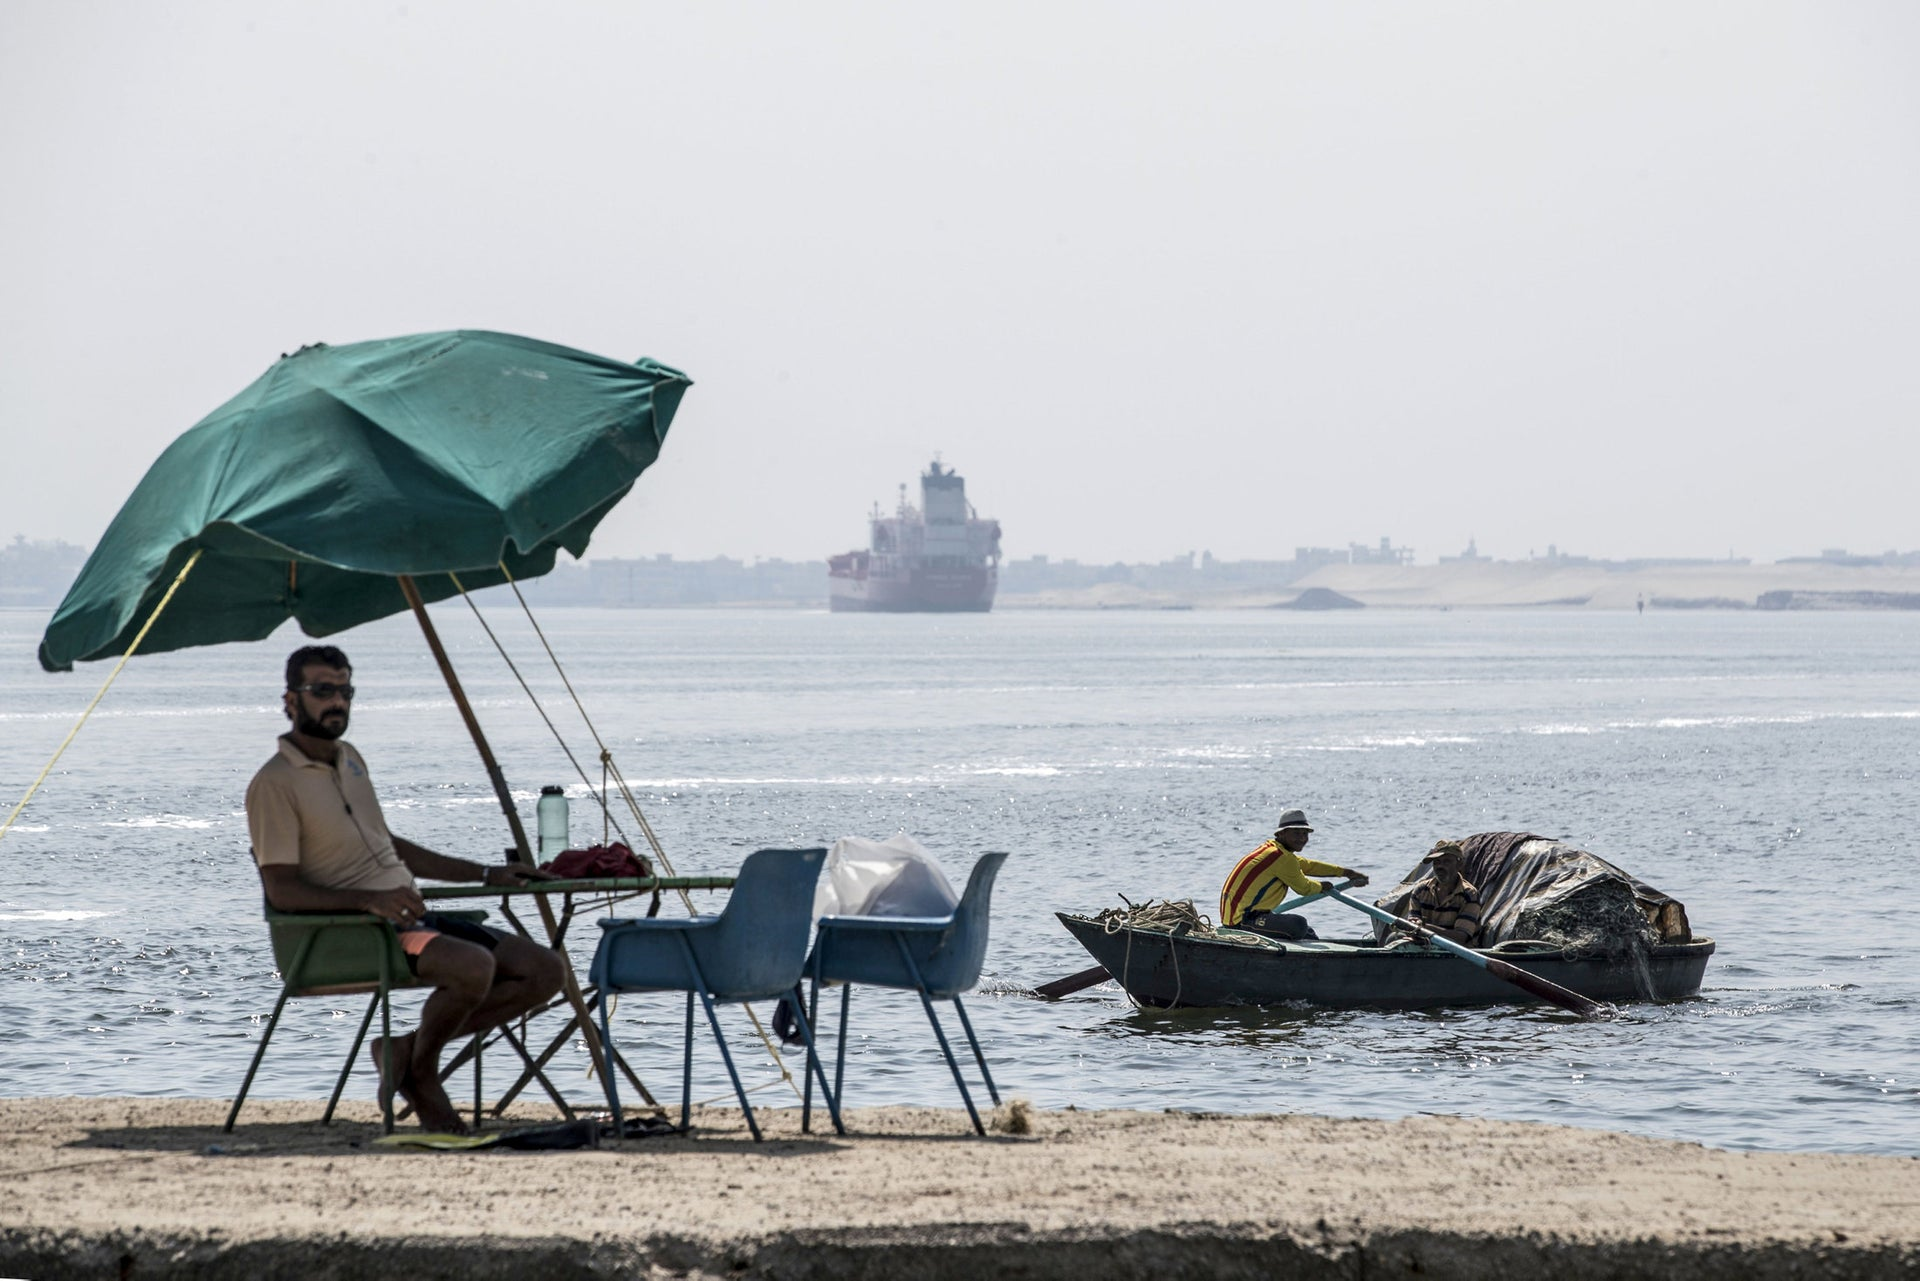 A fisherman takes a rest as a cargo ship sails through the Suez Canal in the Egyptian port city of Ismailia, October 14, 2019.